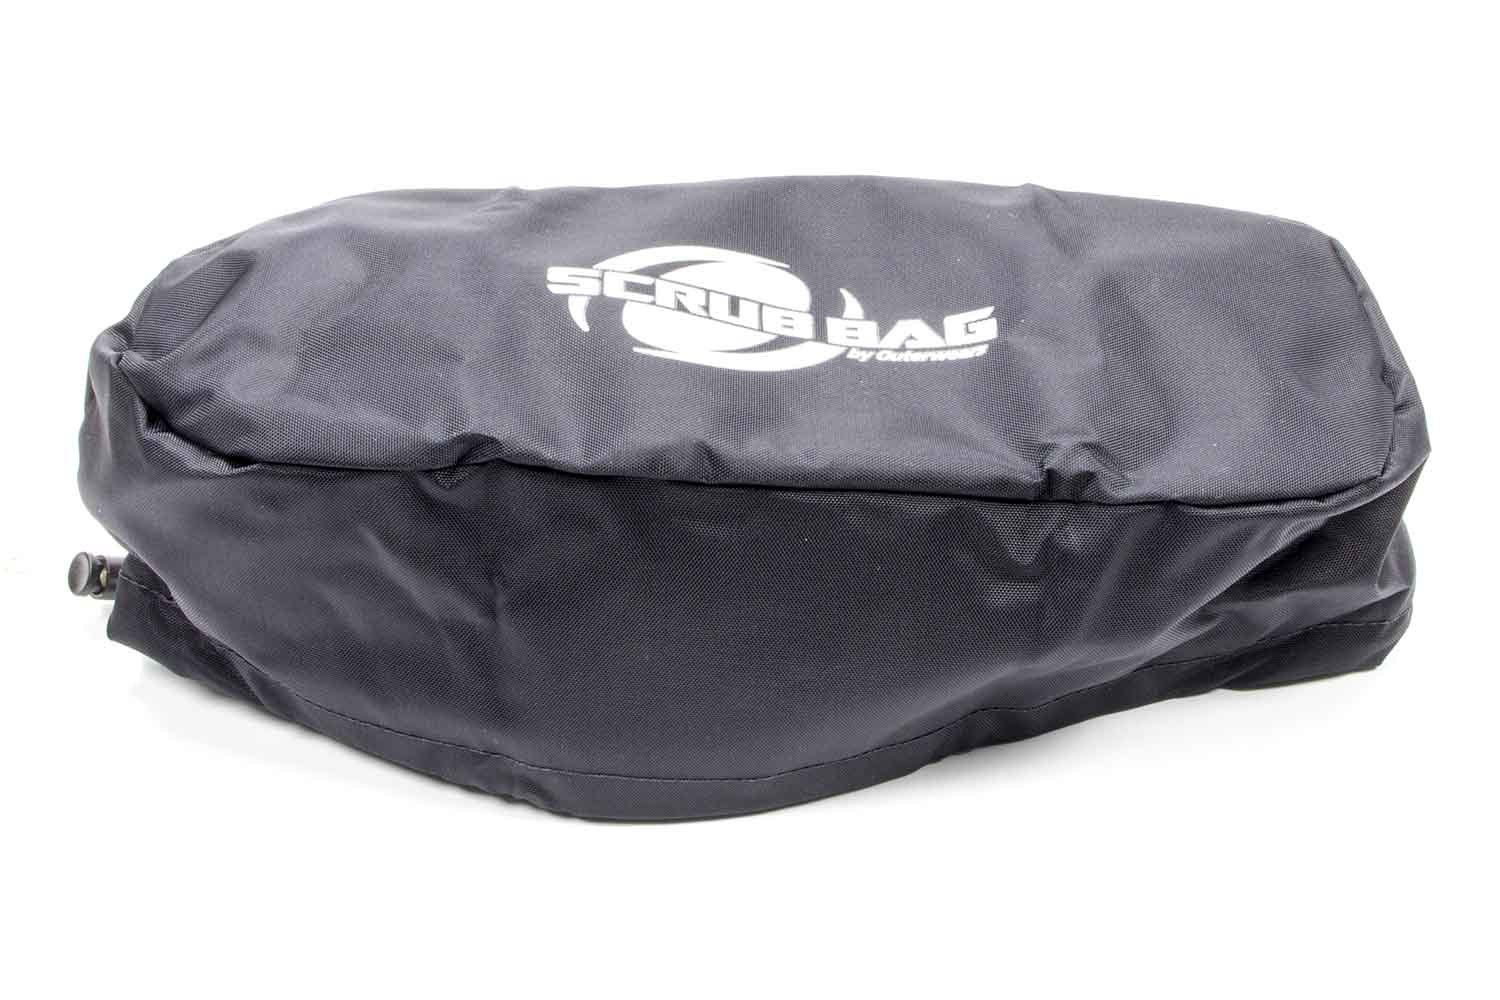 Outerwears 3.5 in Oval Scrub Bag Black